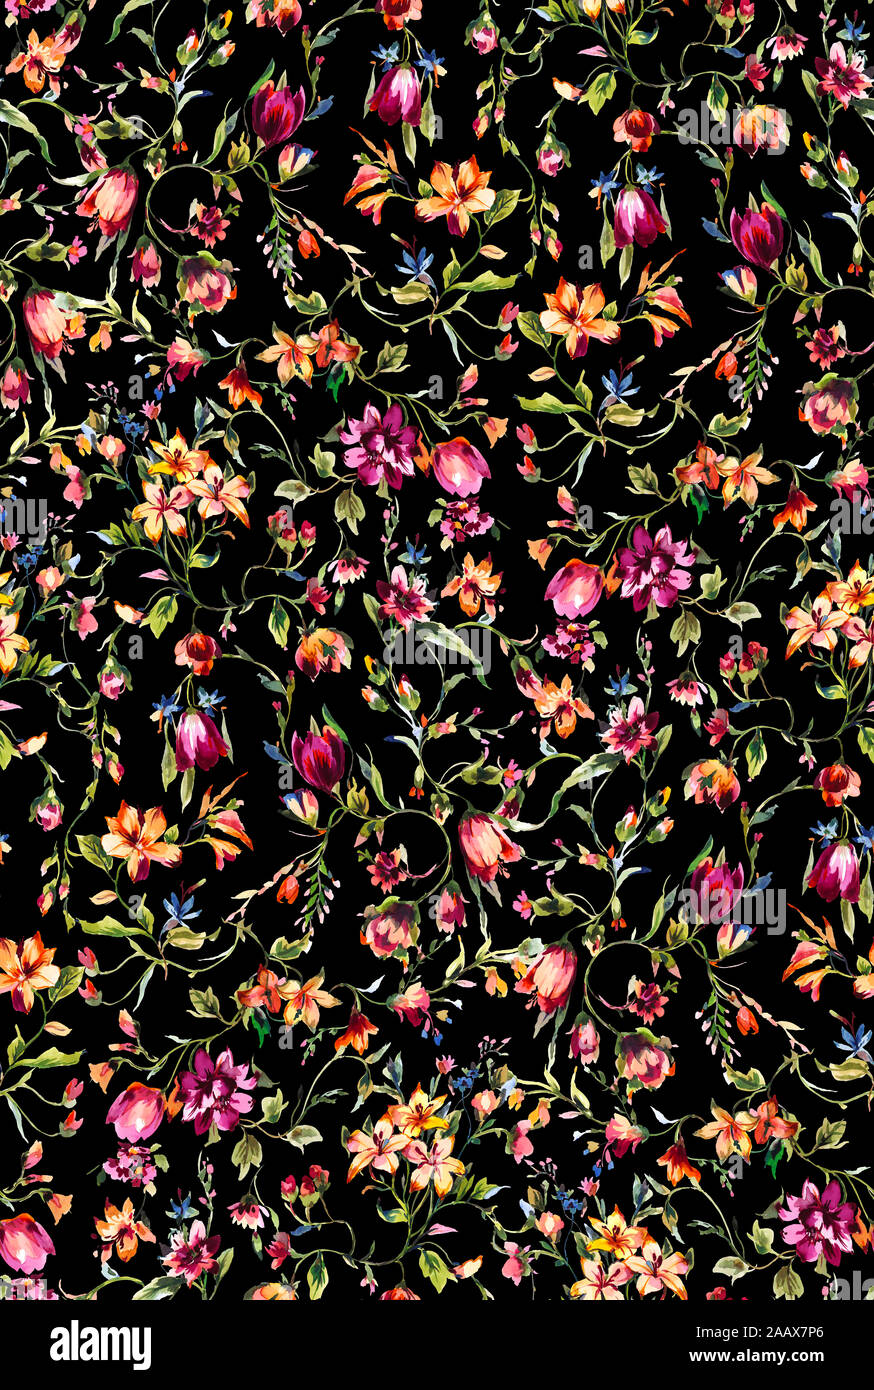 Seamless Watercolor Floral Pattern With Colorful Flowers And